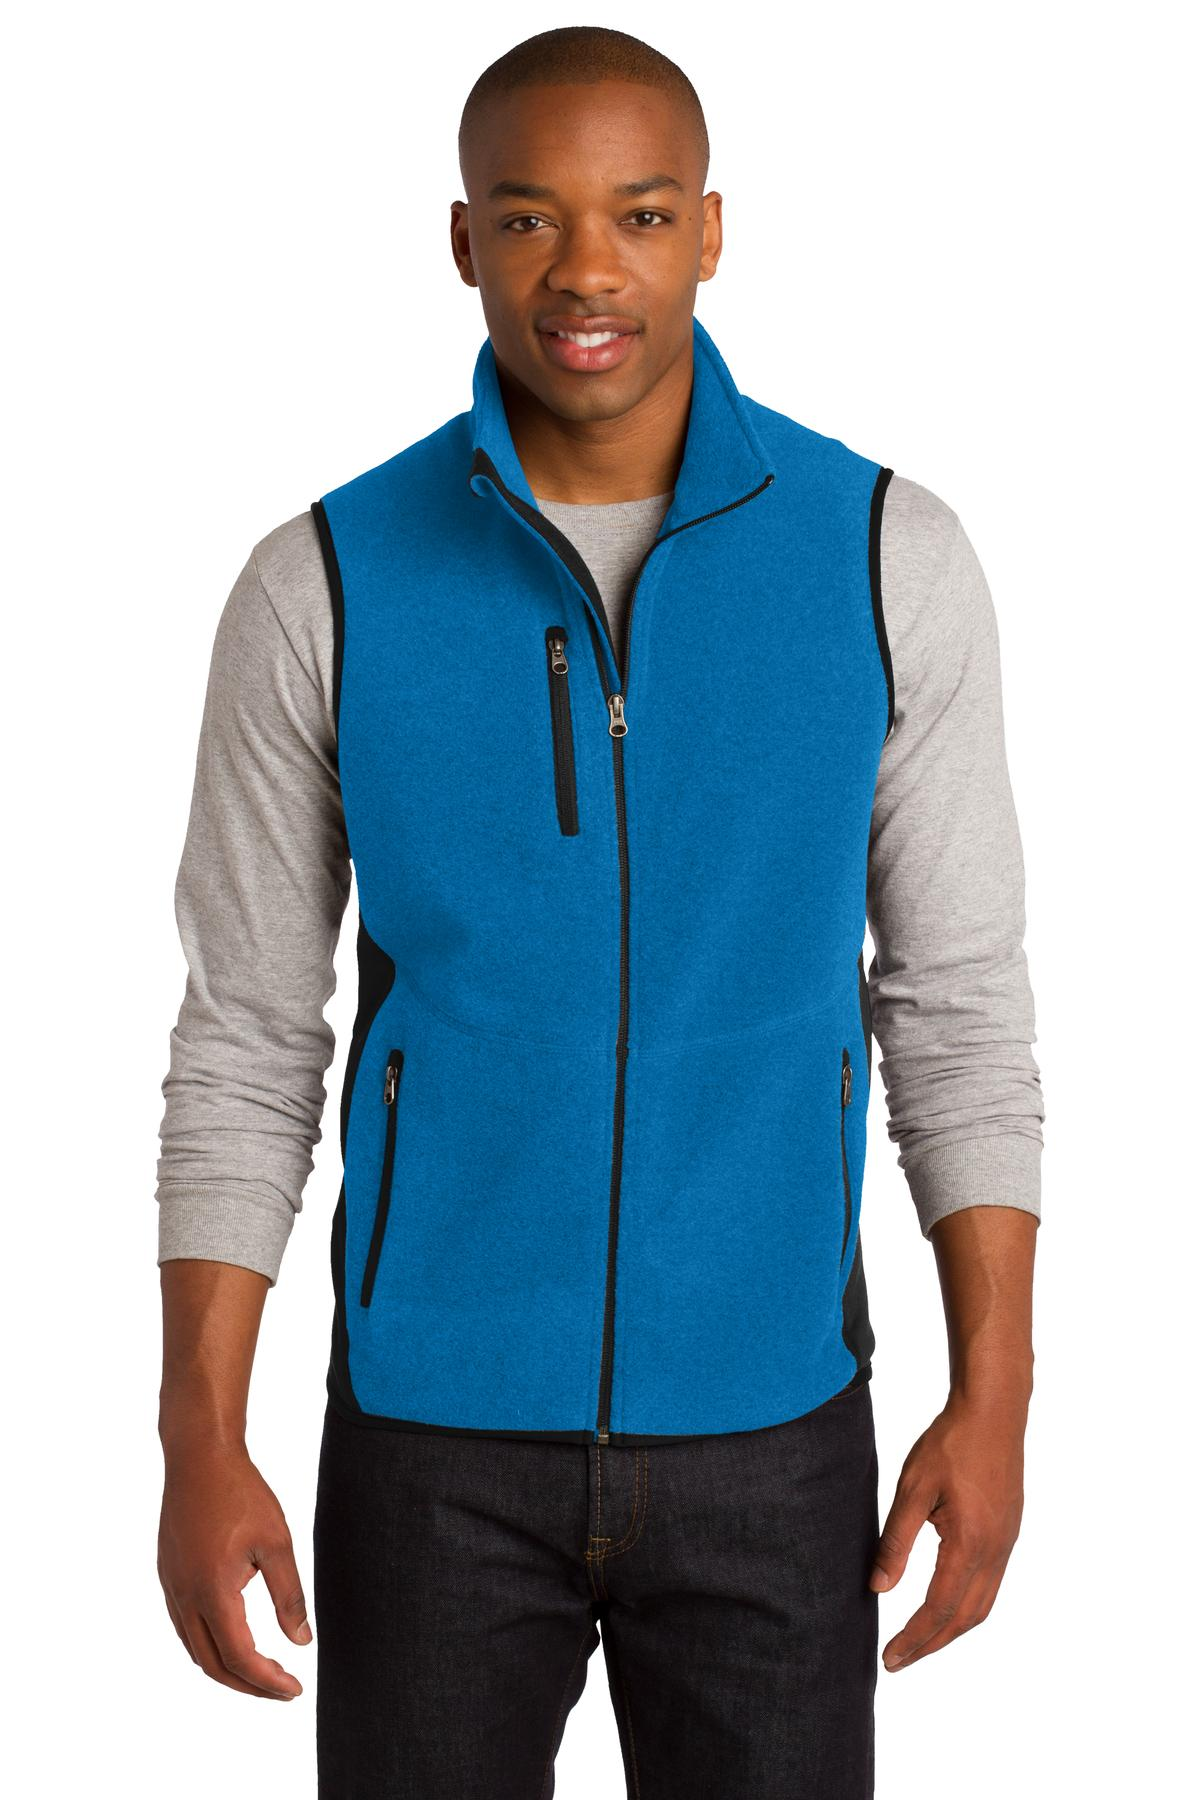 Outerwear-Vests-4